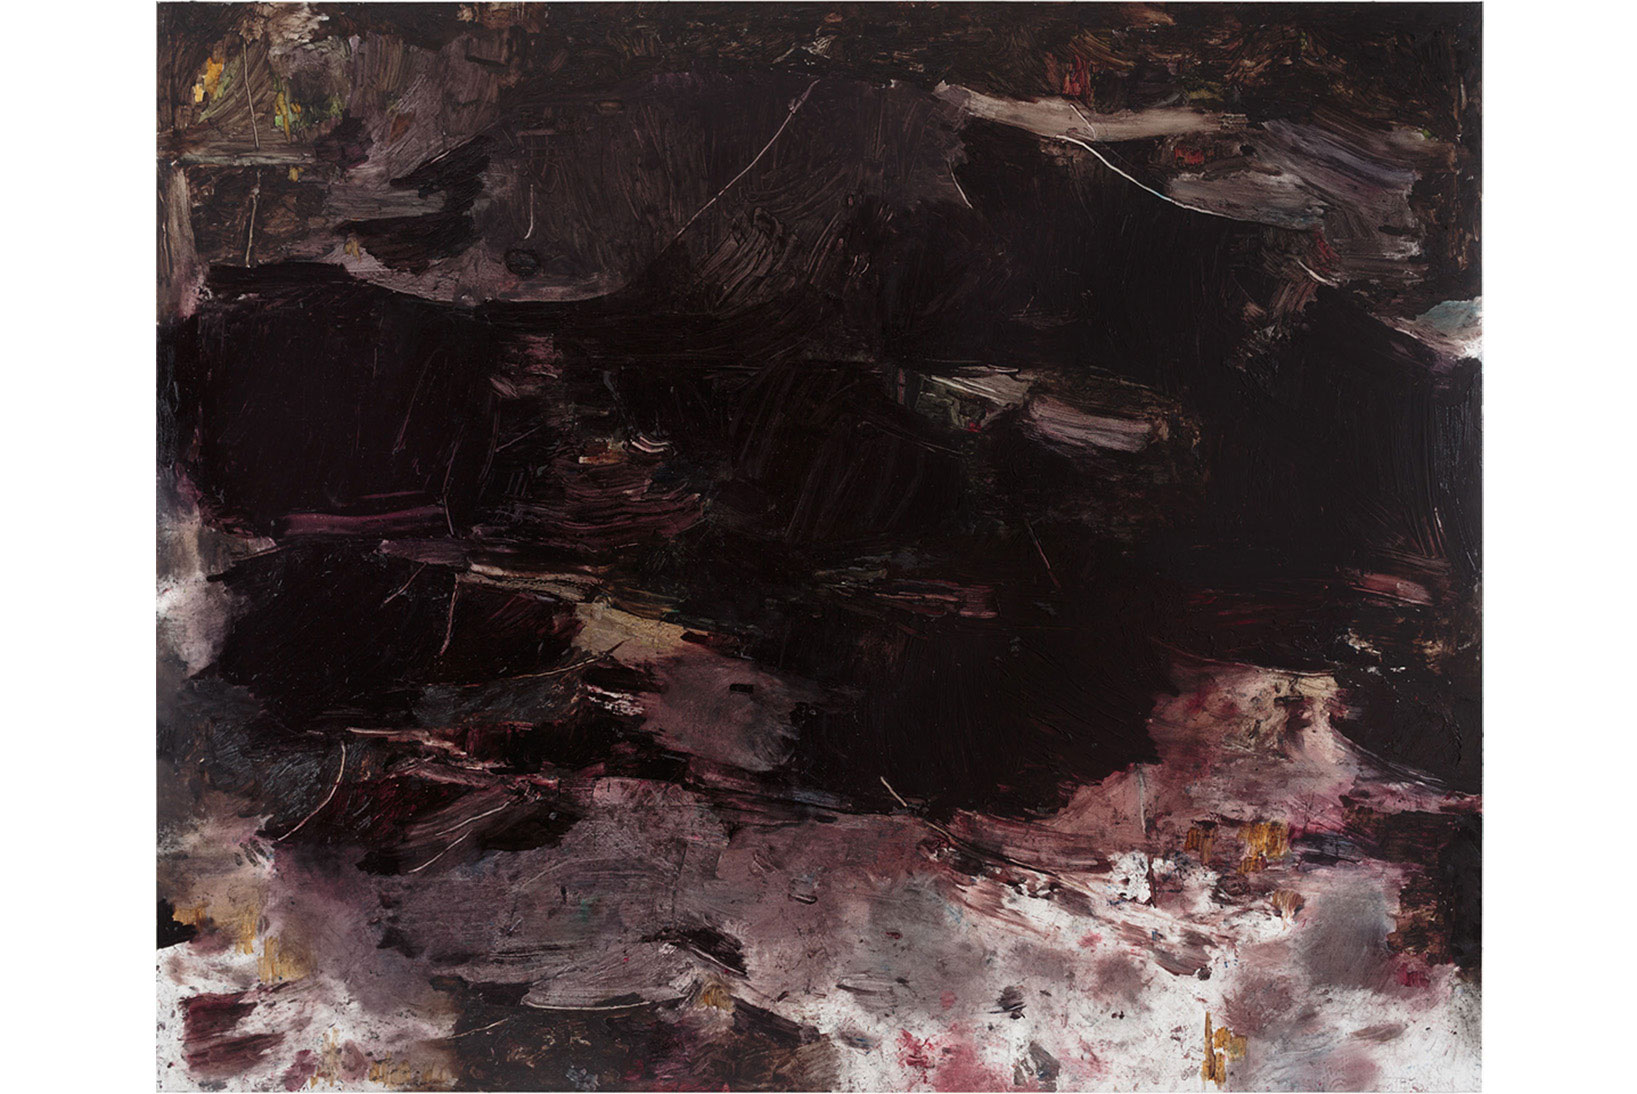 Julia Selin, Untitled, 2014, oil on canvas, 196 x 245 cm